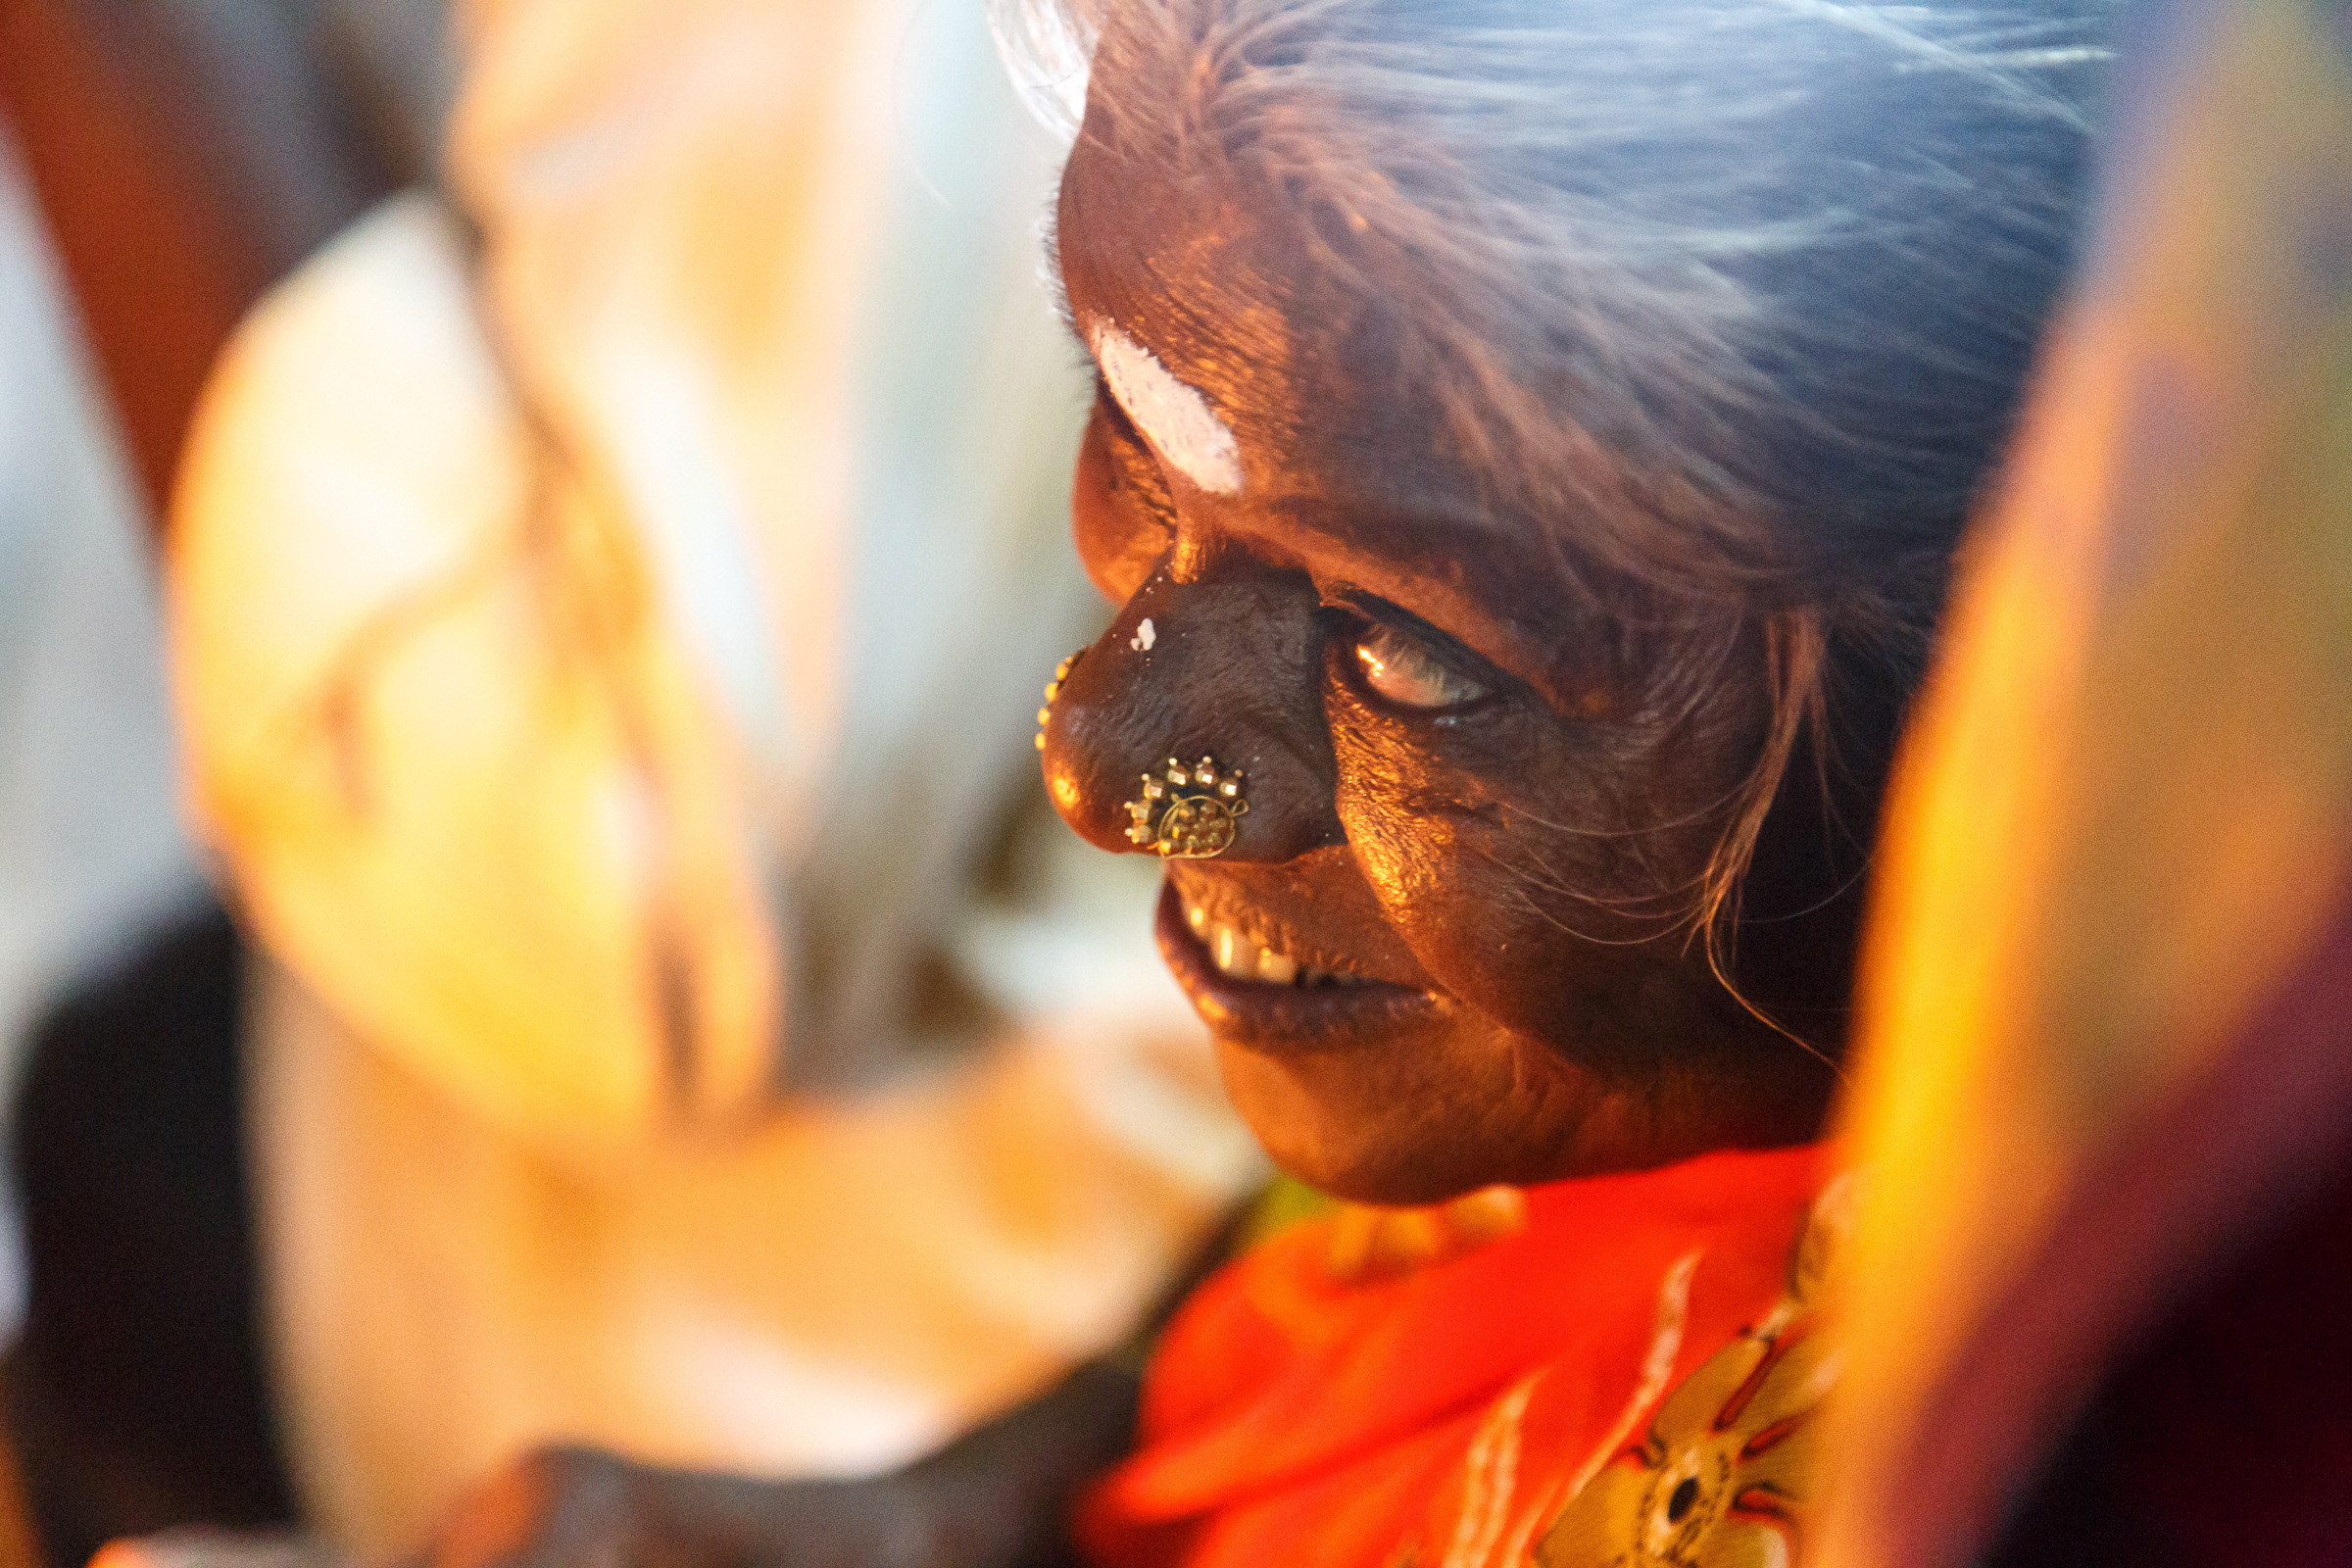 A Devotee's Smile on seeing the diety